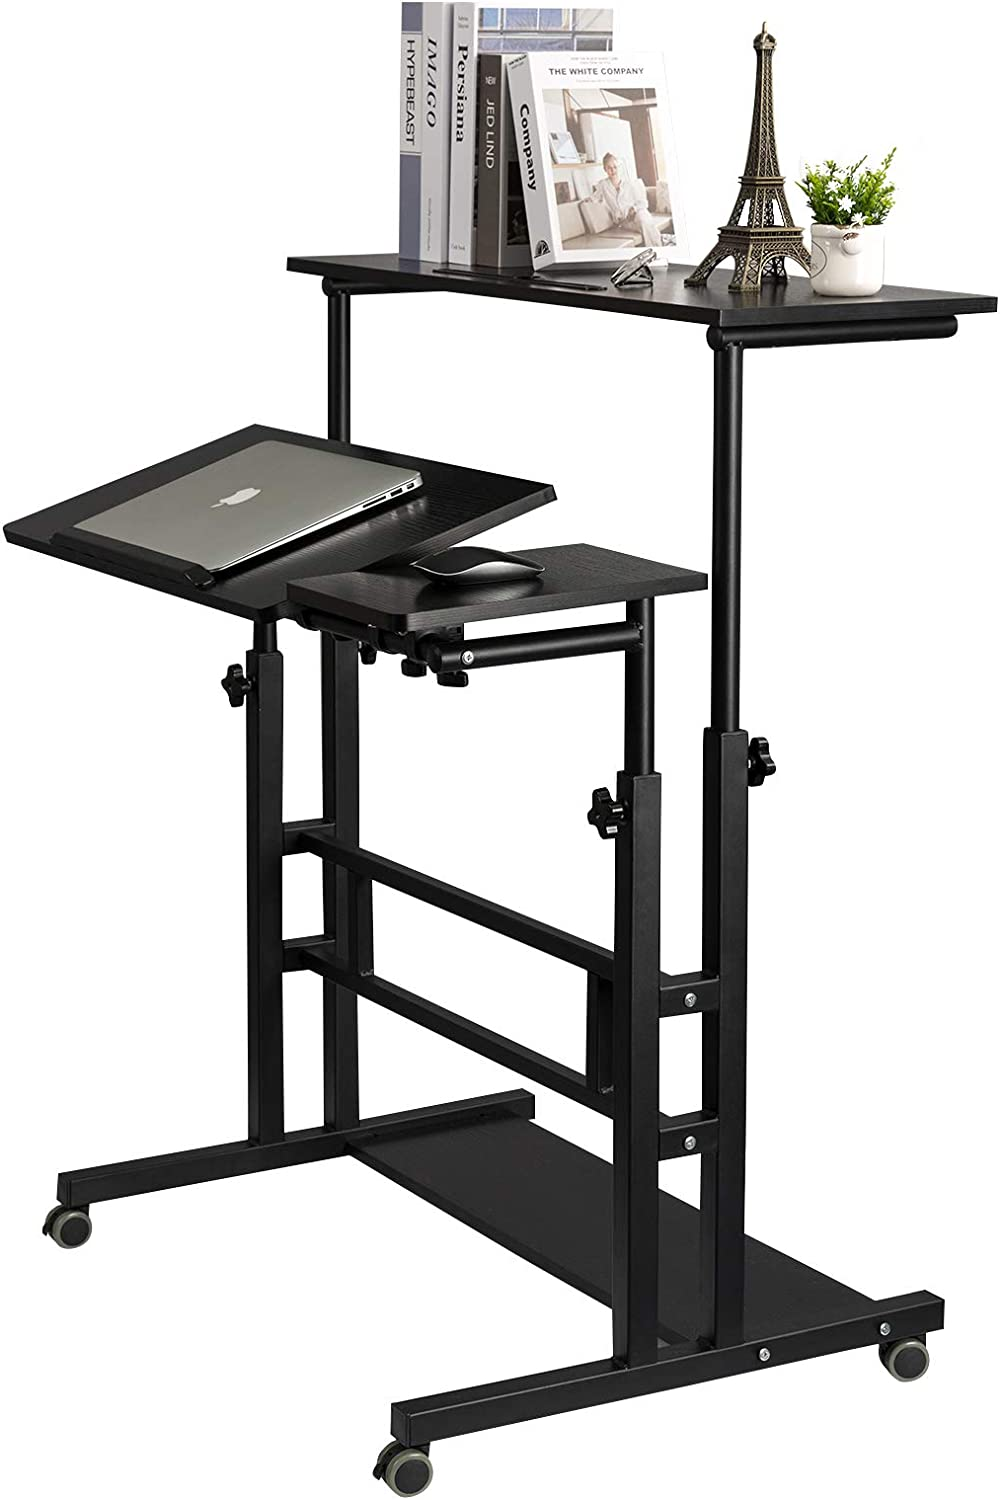 SIDUCAL Mobile Standing Desk, Rolling Ajustable Computer Desk, Mobile Computer Workstation Adjustable Desks for Home Office for Stand Up, Black